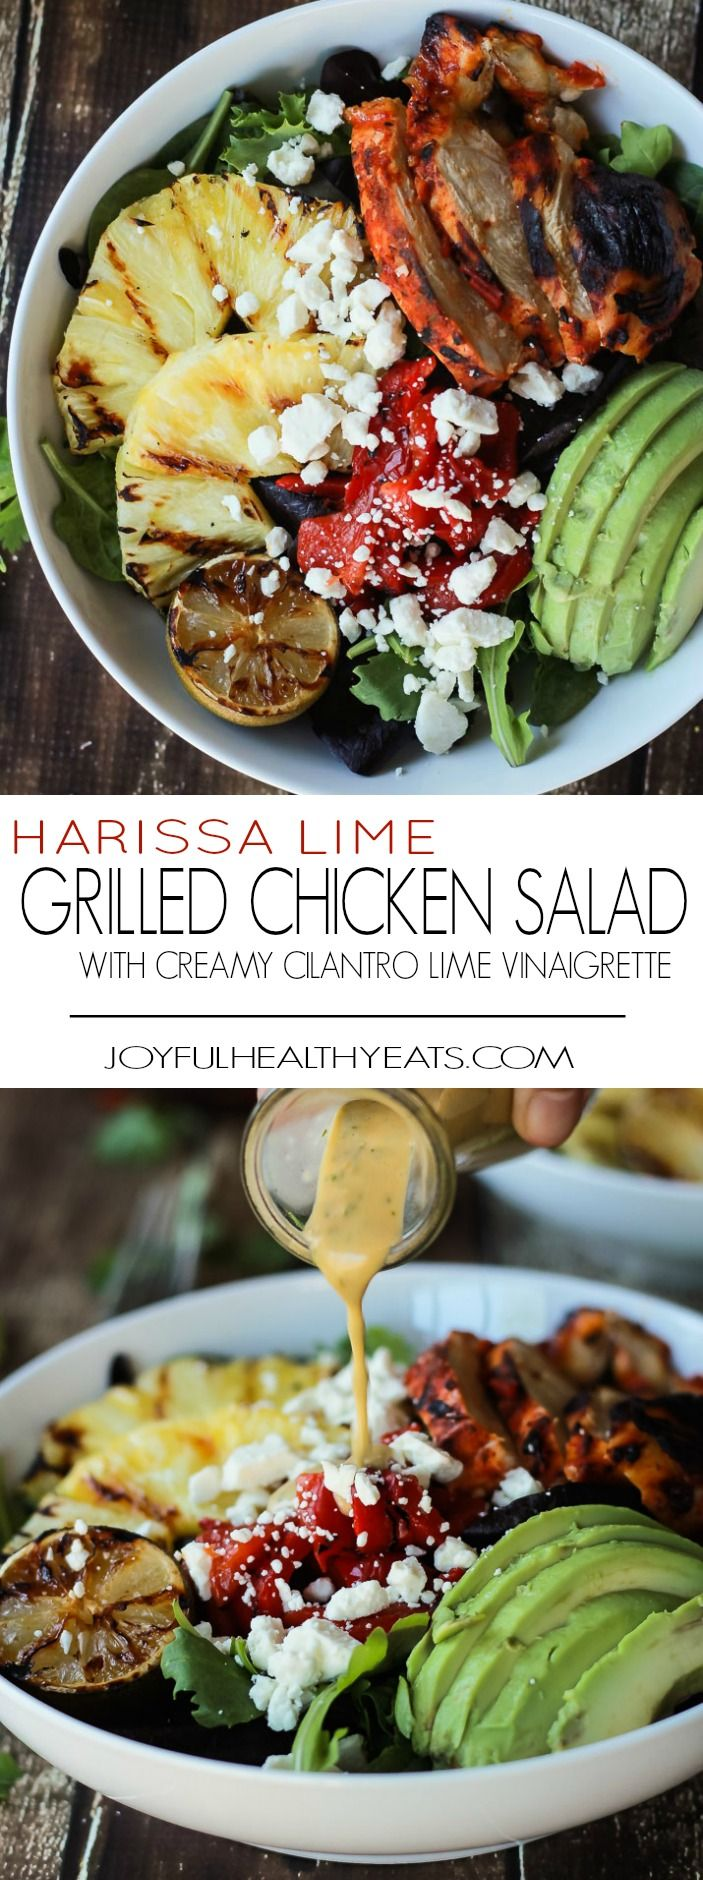 Harissa Lime Grilled Chicken Salad with a Creamy Cilantro Lime Vinaigrette, filled with grilled pineapple, limes, fresh avocado and an amazing dressing! Add to your list!   joyfulhealthyeats.com #glutenfree #recipes